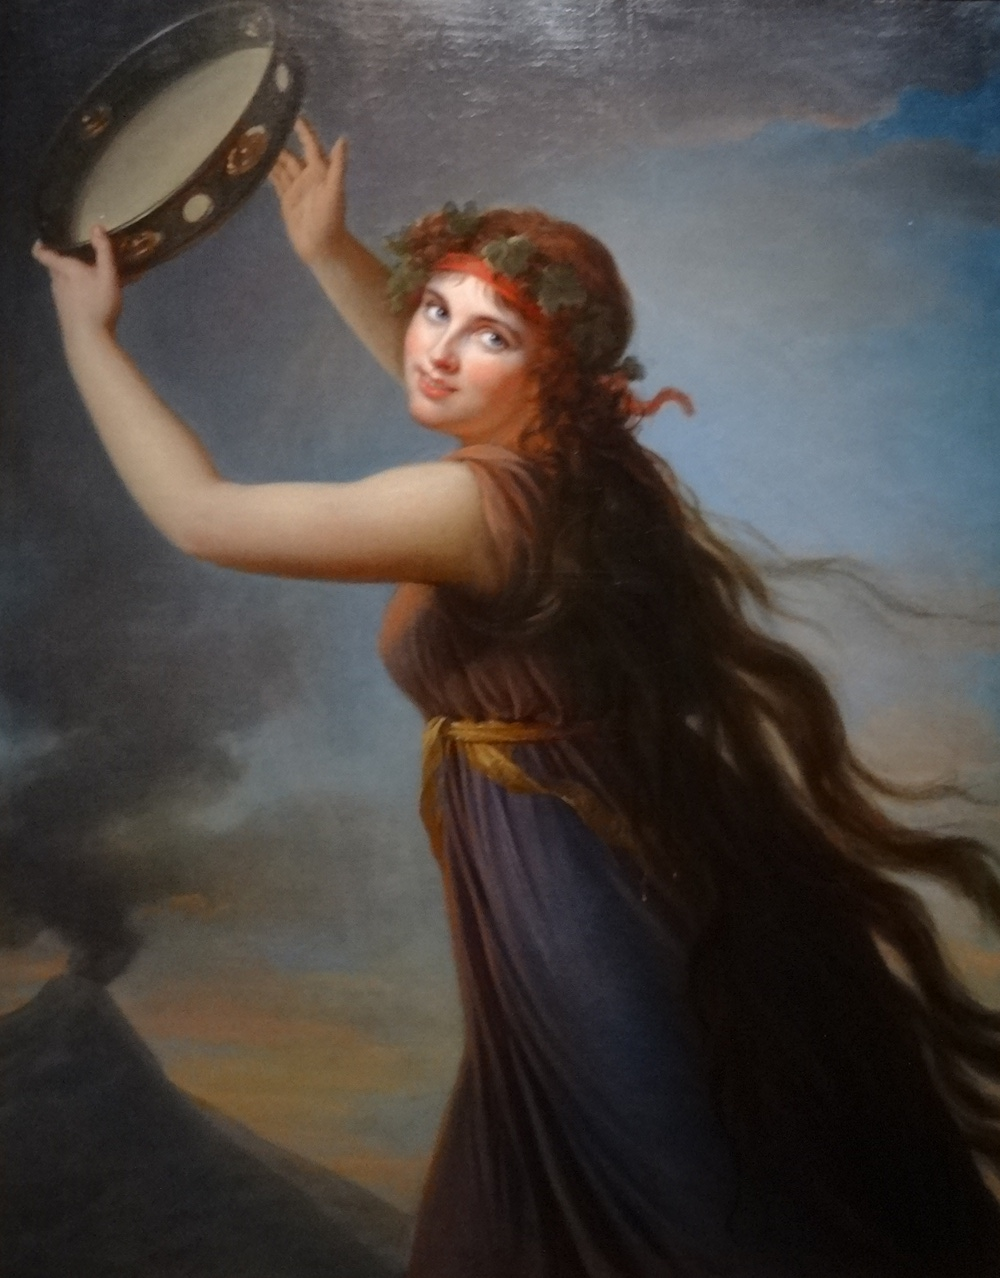 Lady Hamilton as a bacchante dancing in front of Vesuvius in 1792 by Elisabeth Vigée Le Brun